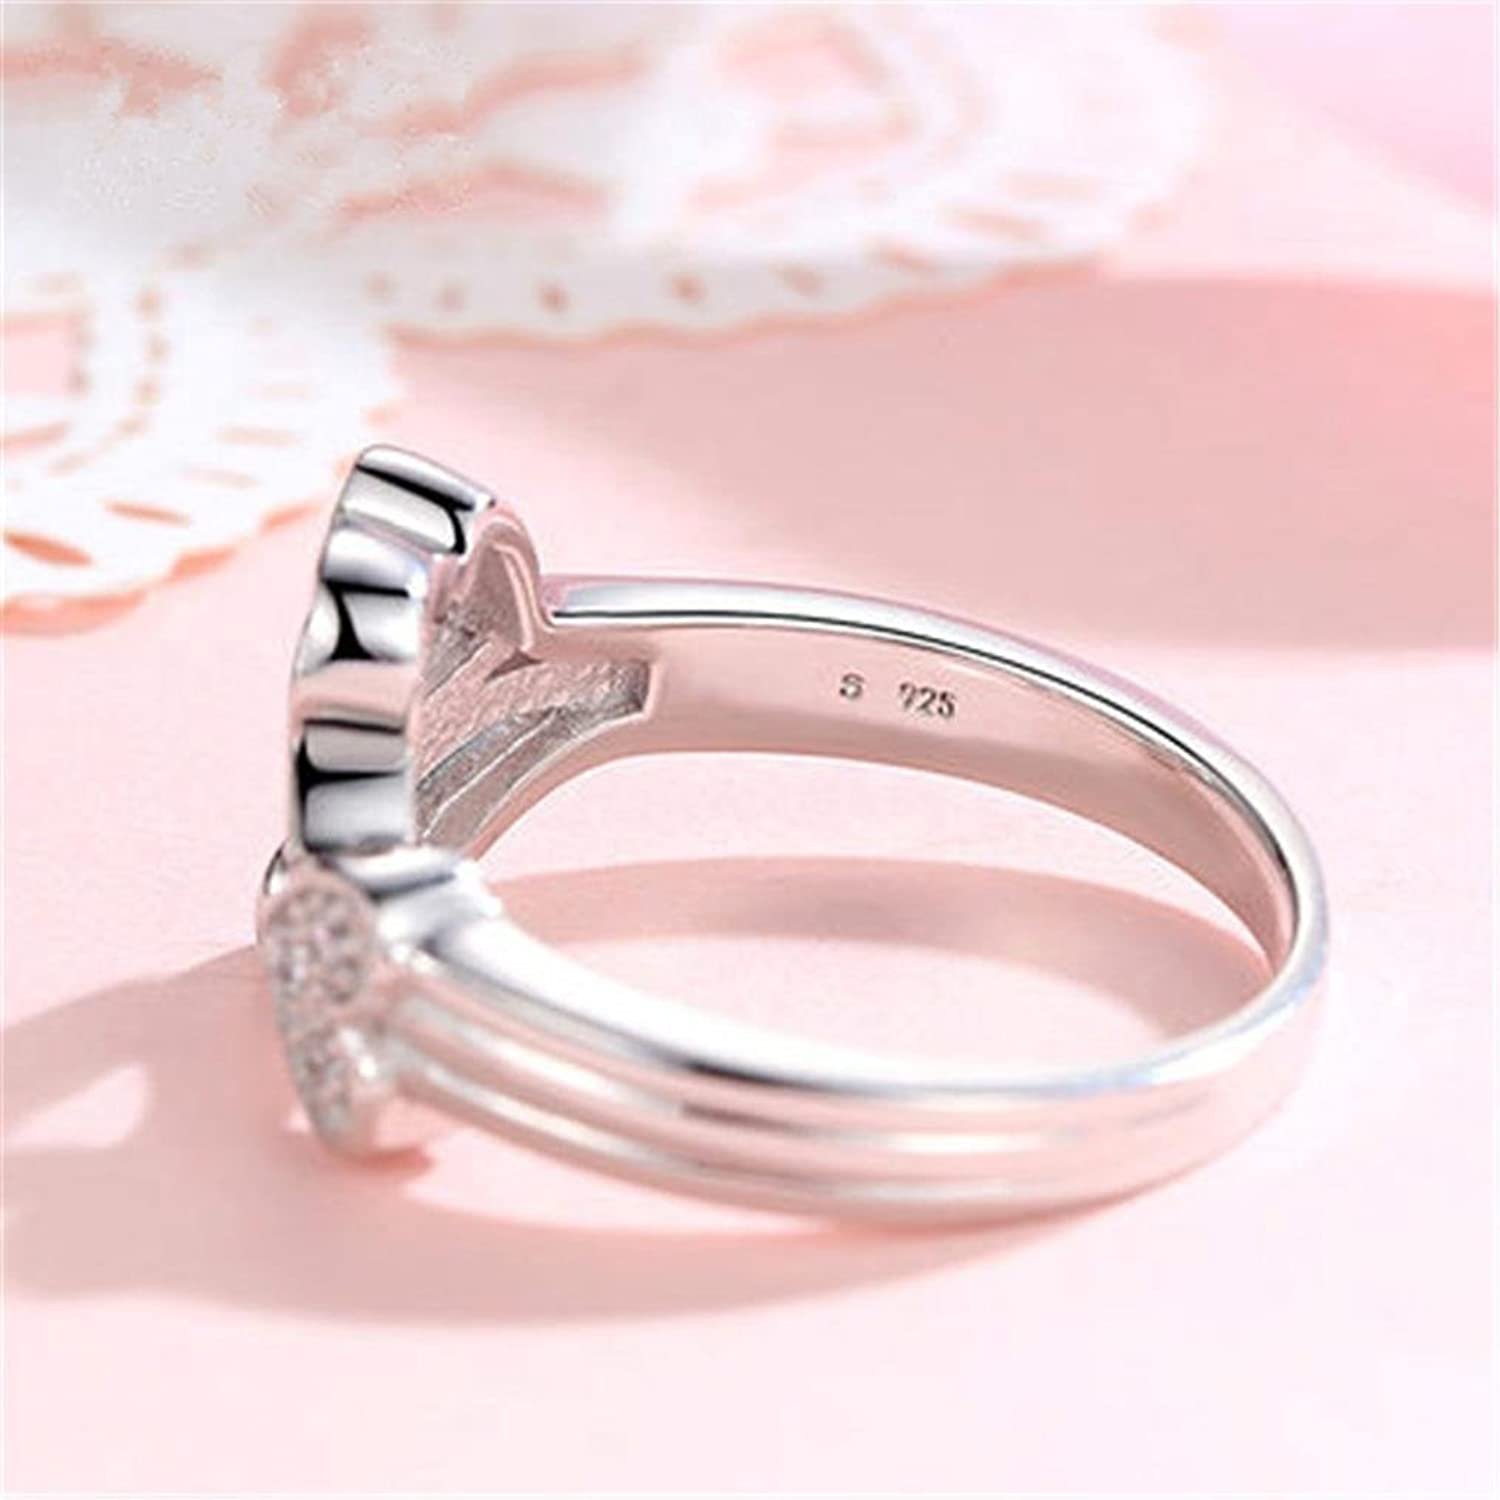 Amazon.com: Alonea Heart Ring, Women Creative Fashion Heart Love ...